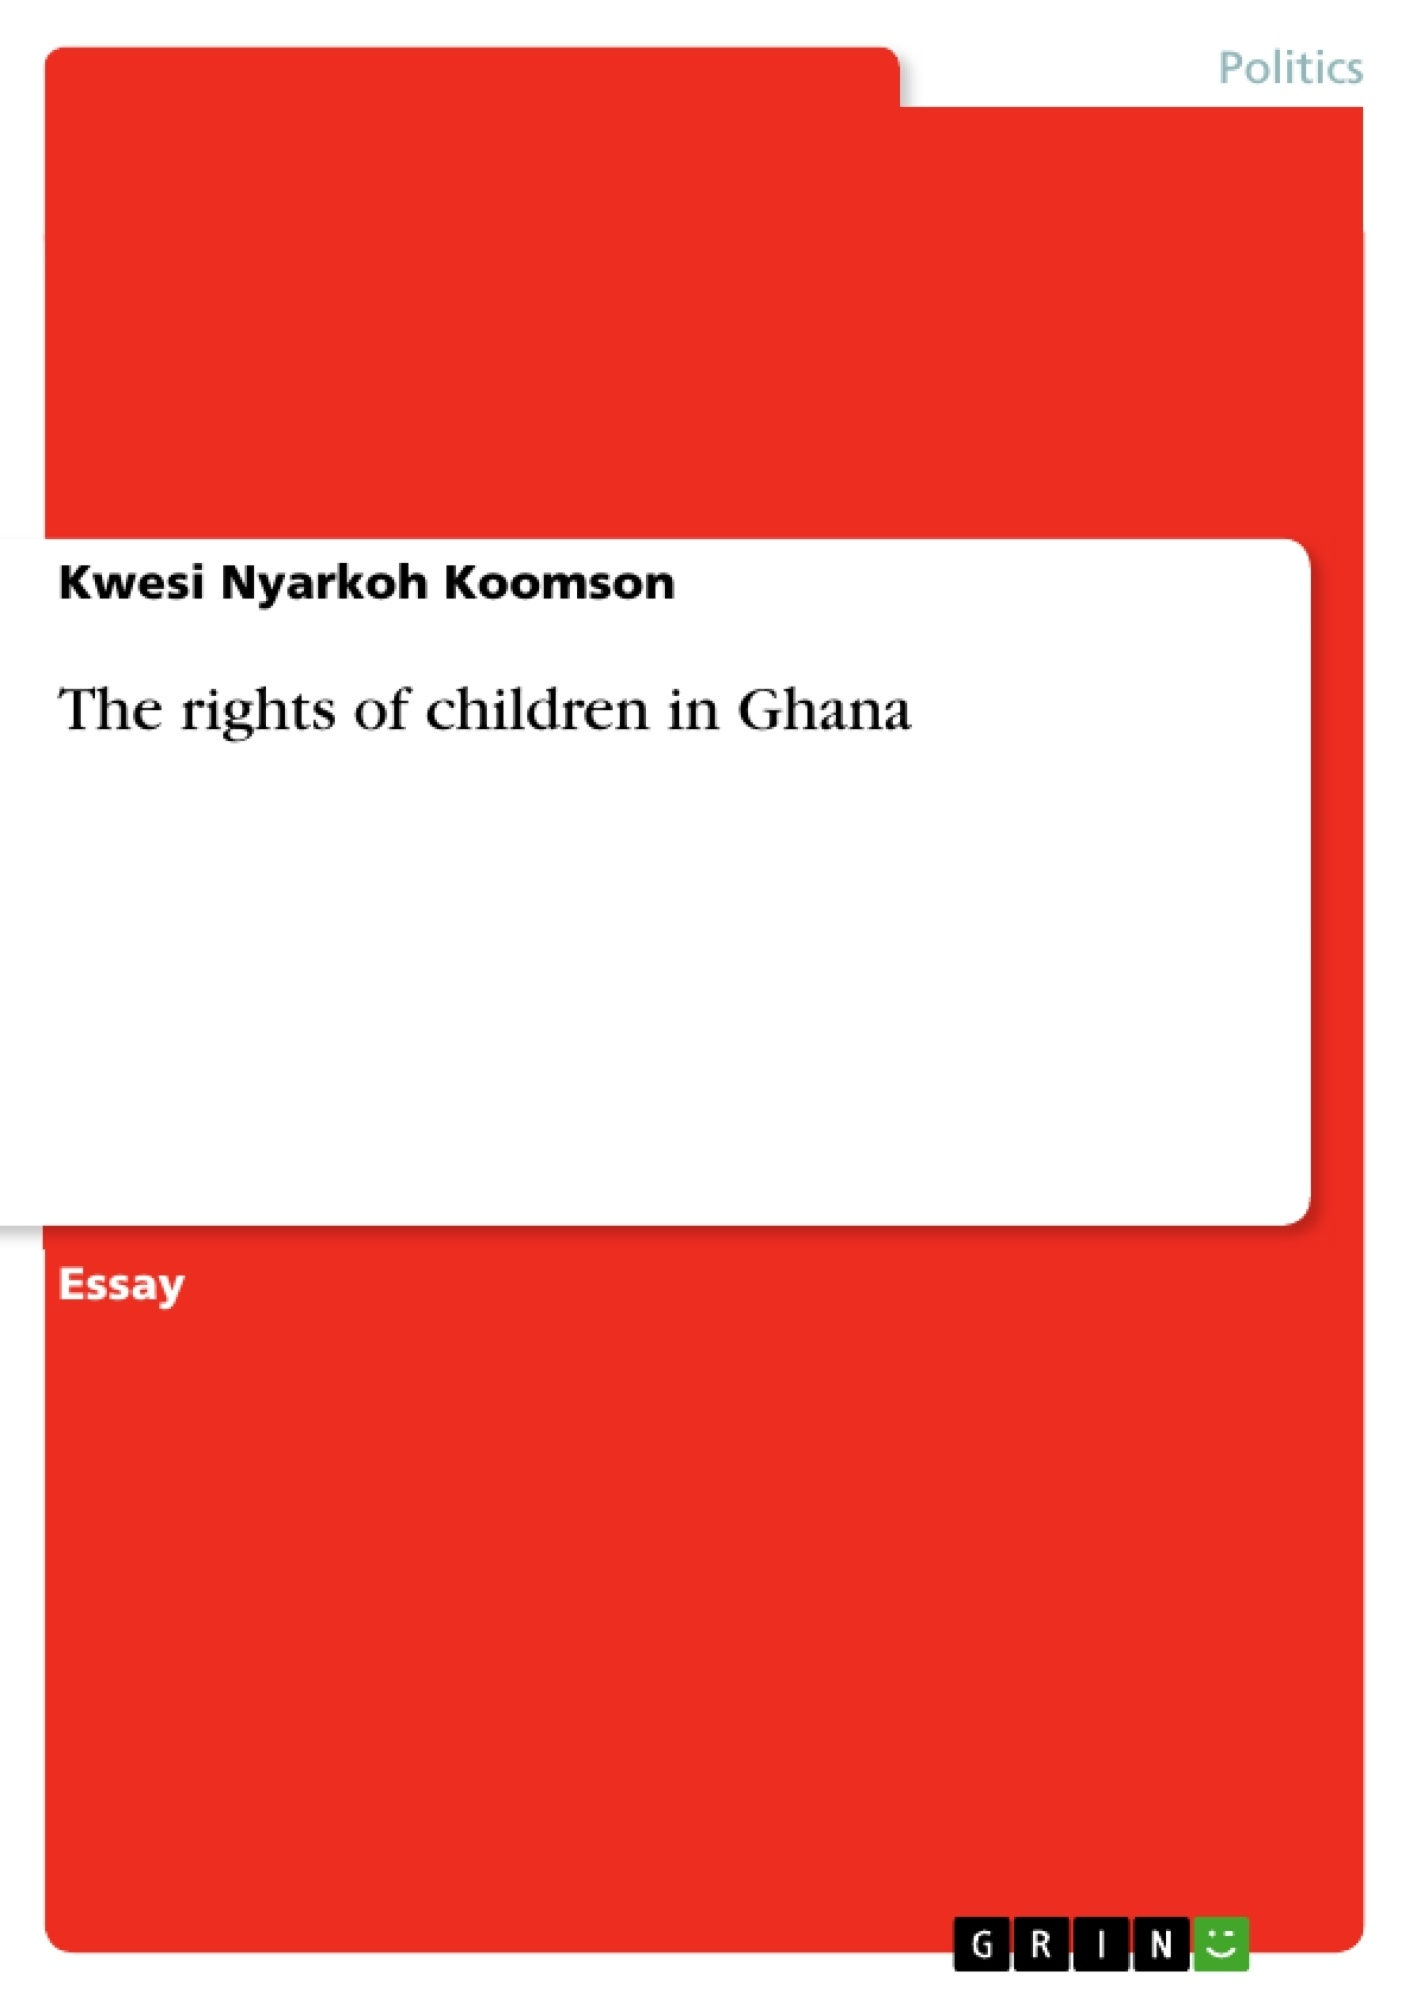 Title: The rights of children in Ghana